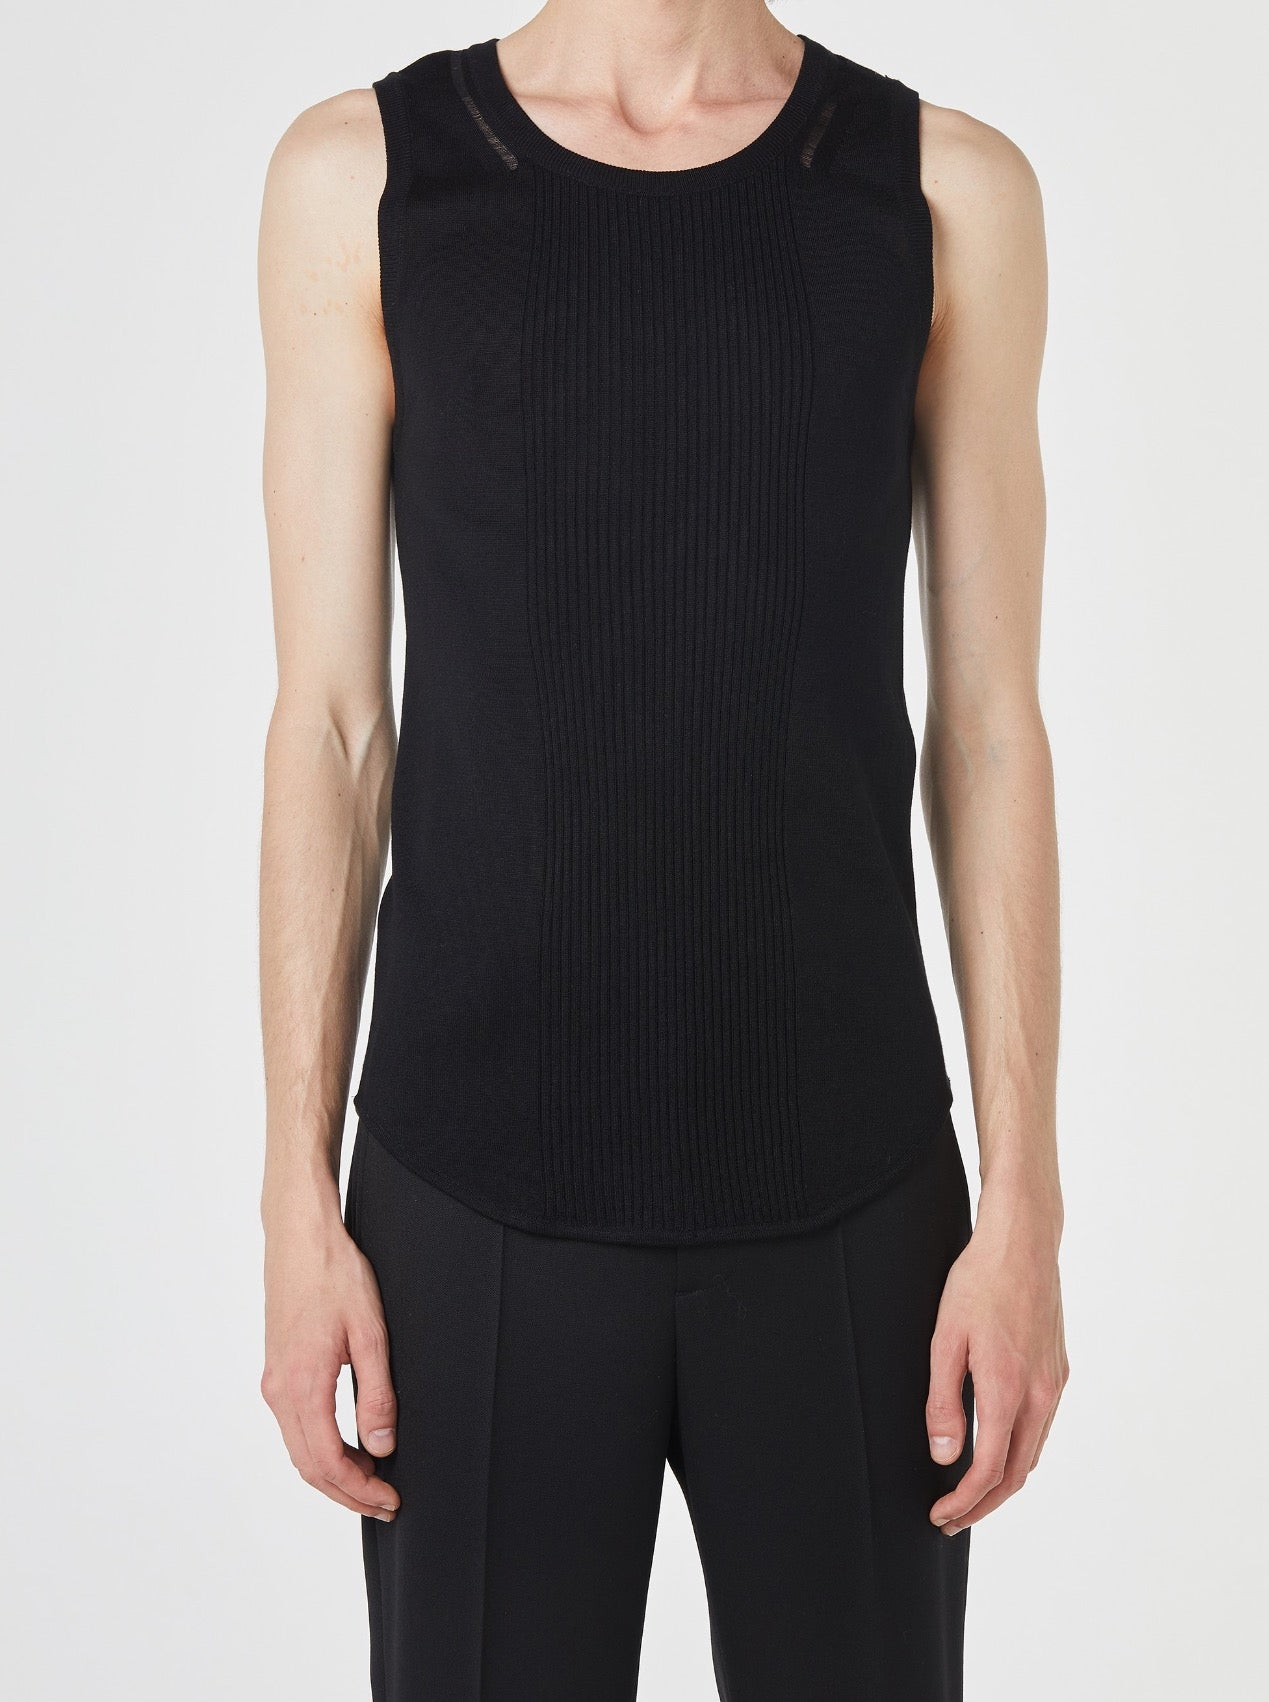 BLACK SLEEVELESS KNIT PULLOVER